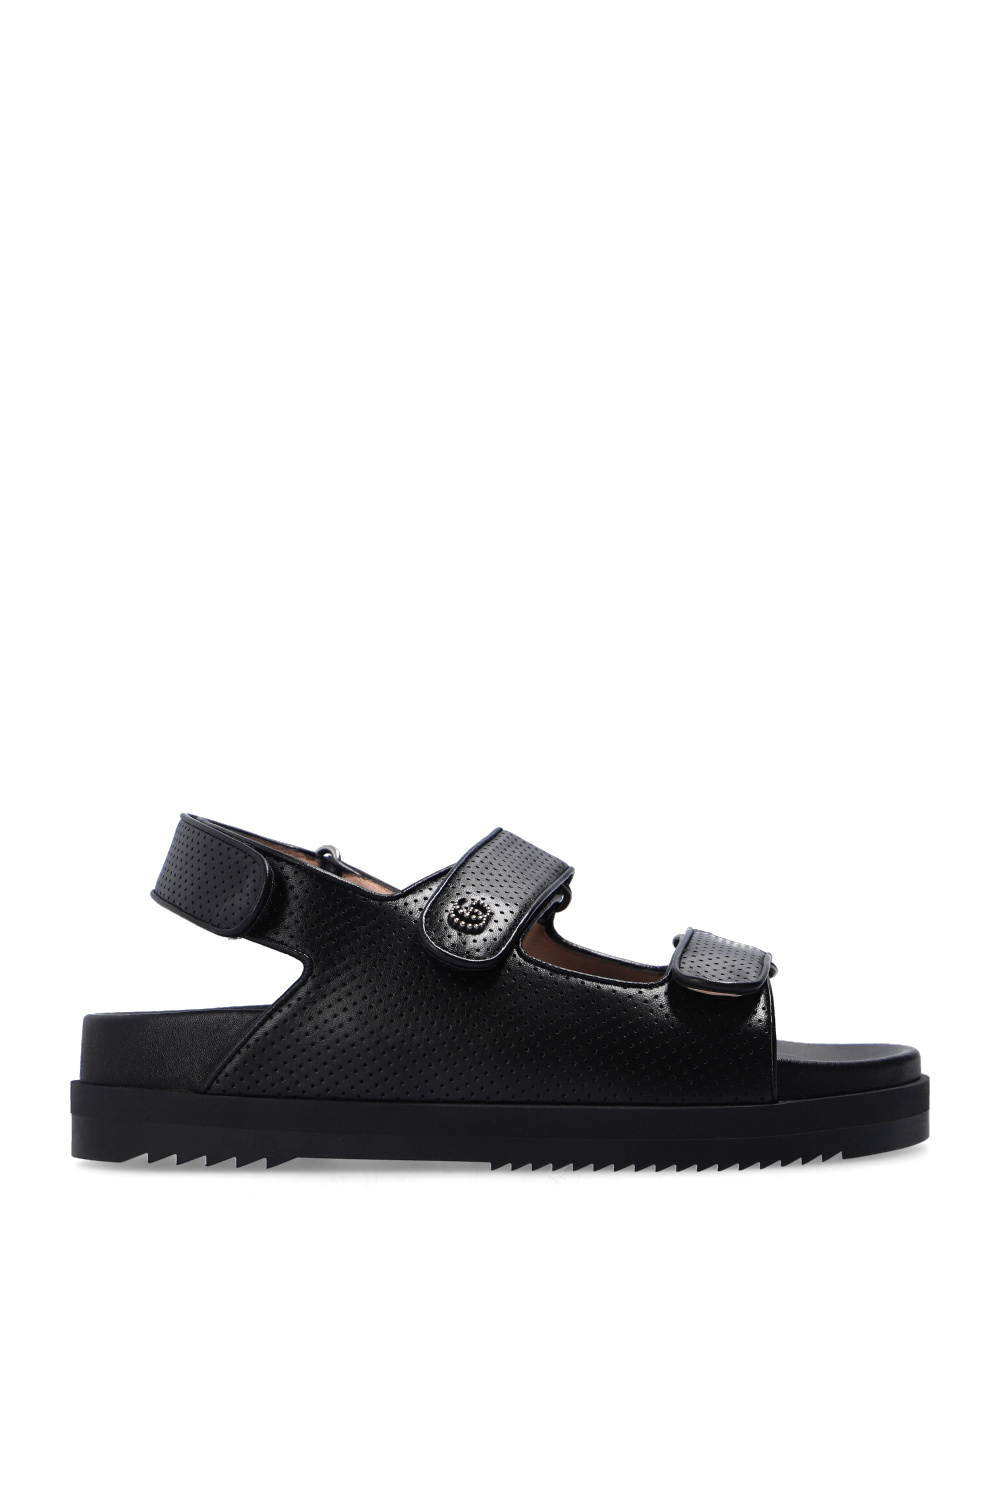 Gucci Leather sandals with logo